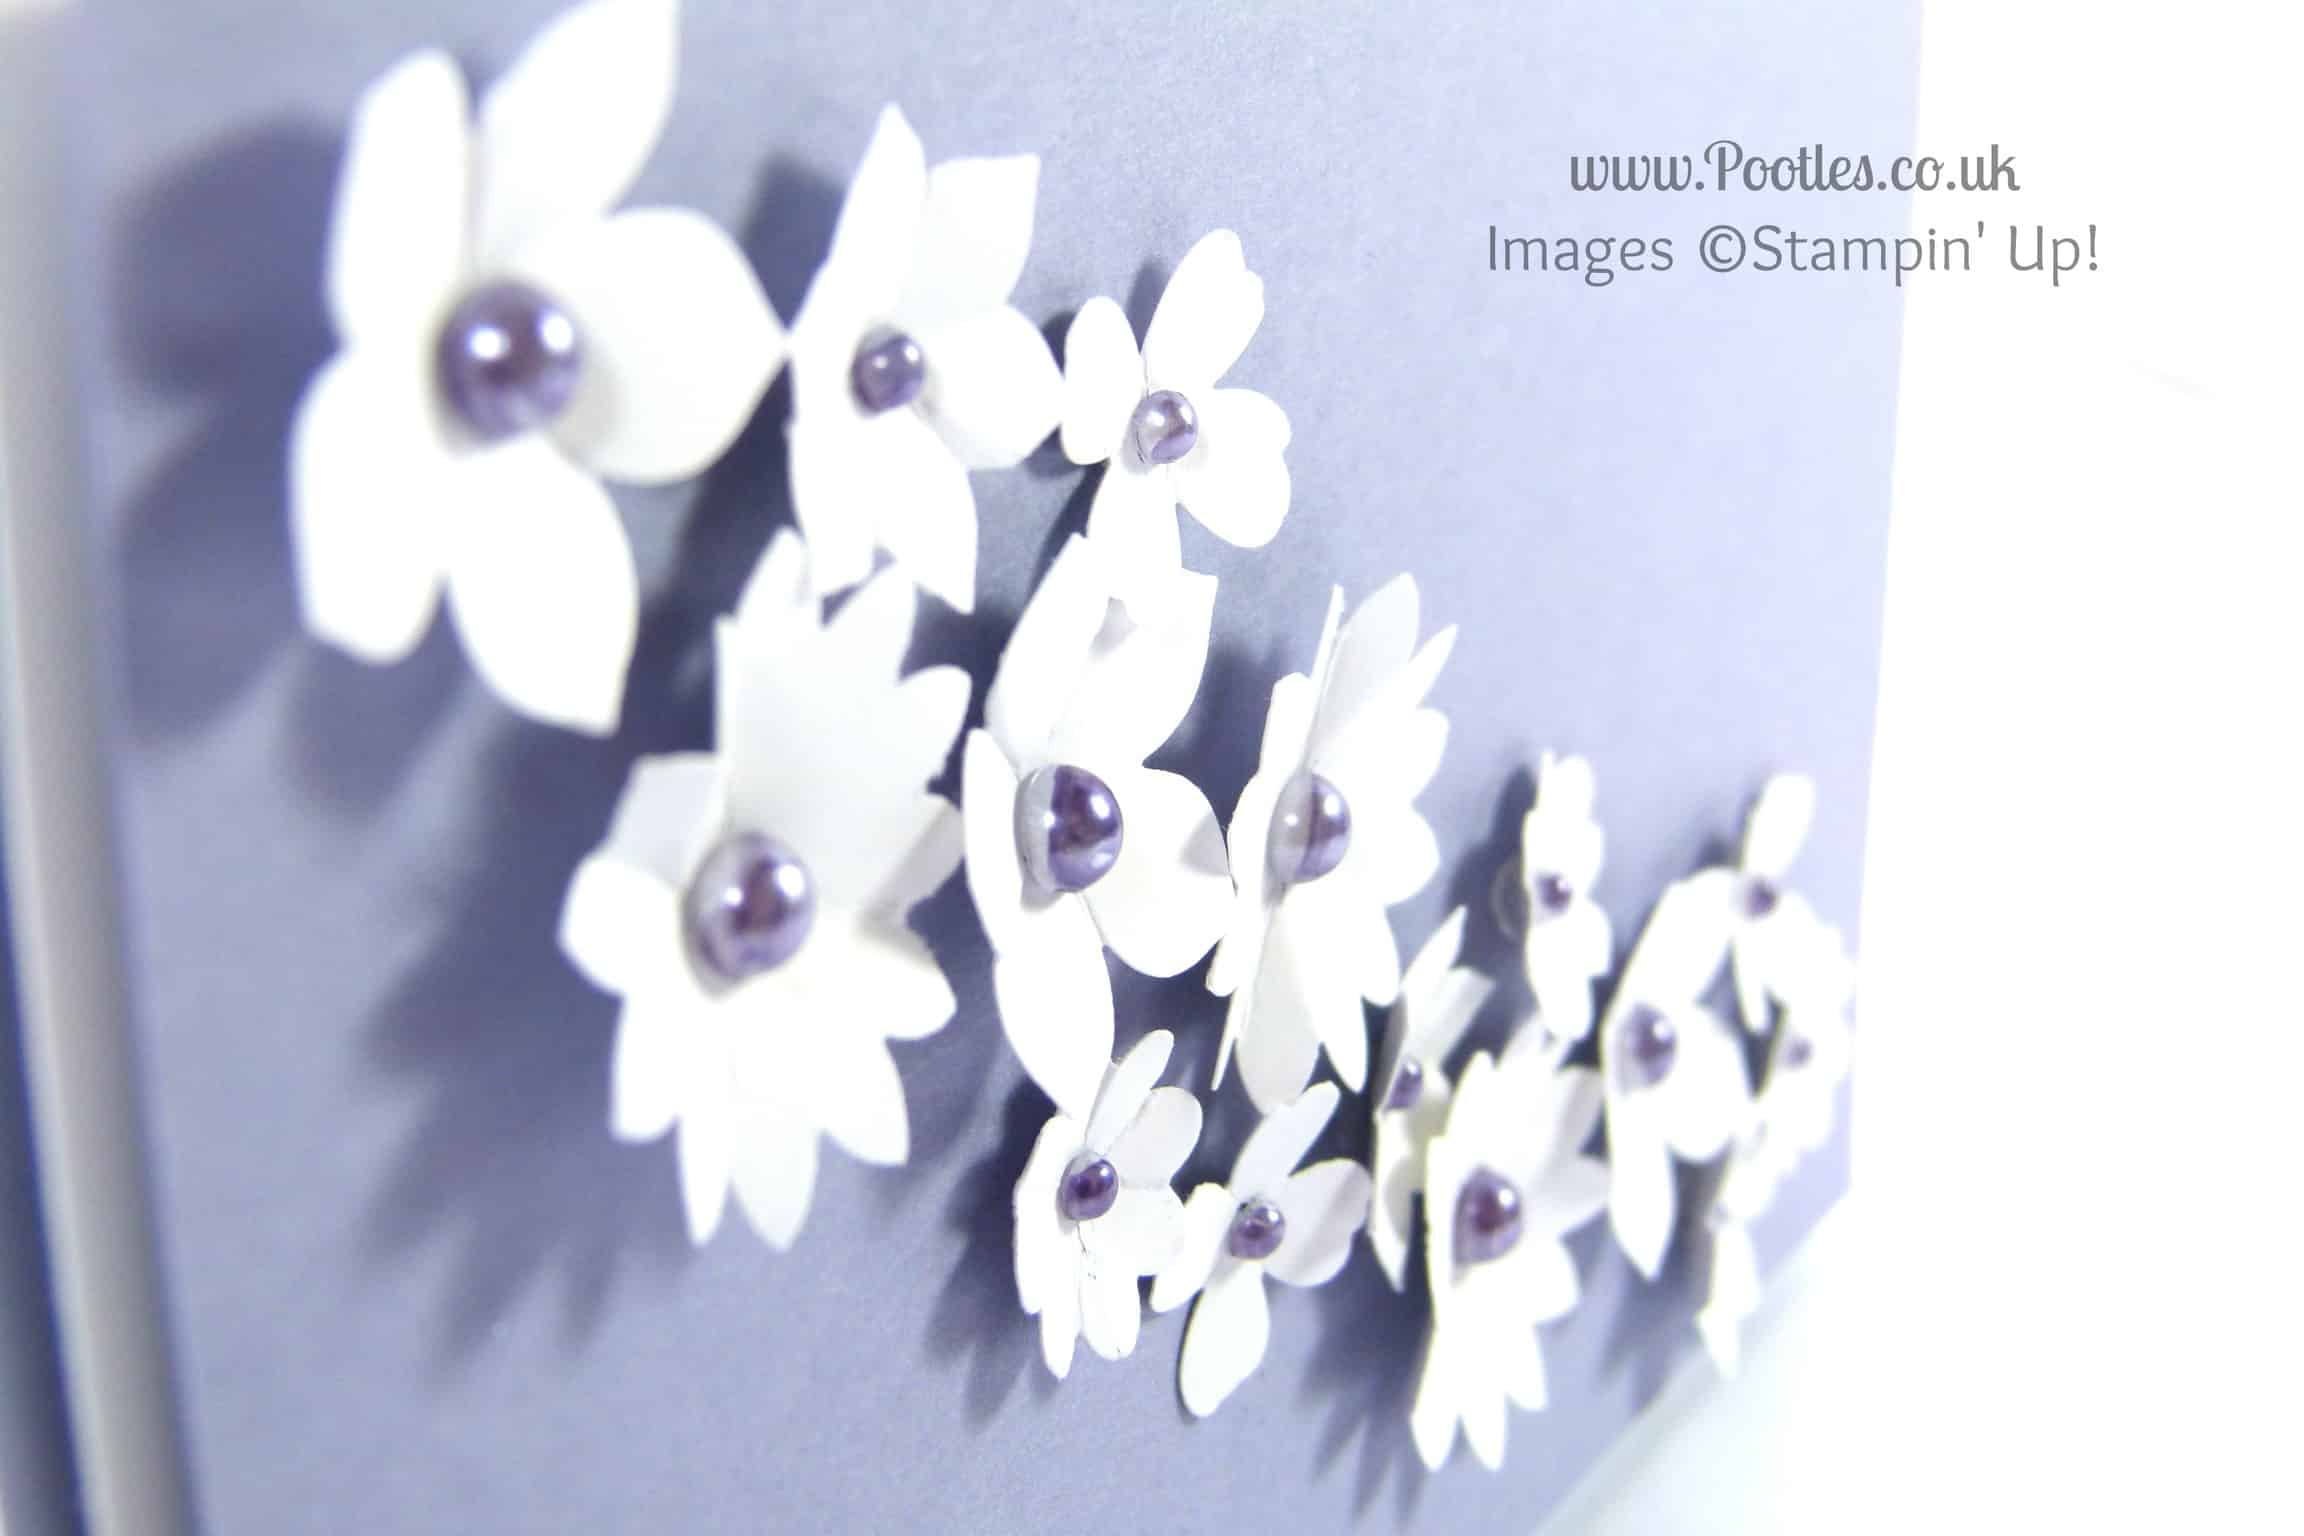 Stampin' Up! UK Demonstrator Pootles - Blendabilities and Pearls on a Wedding Cake Card Close Up